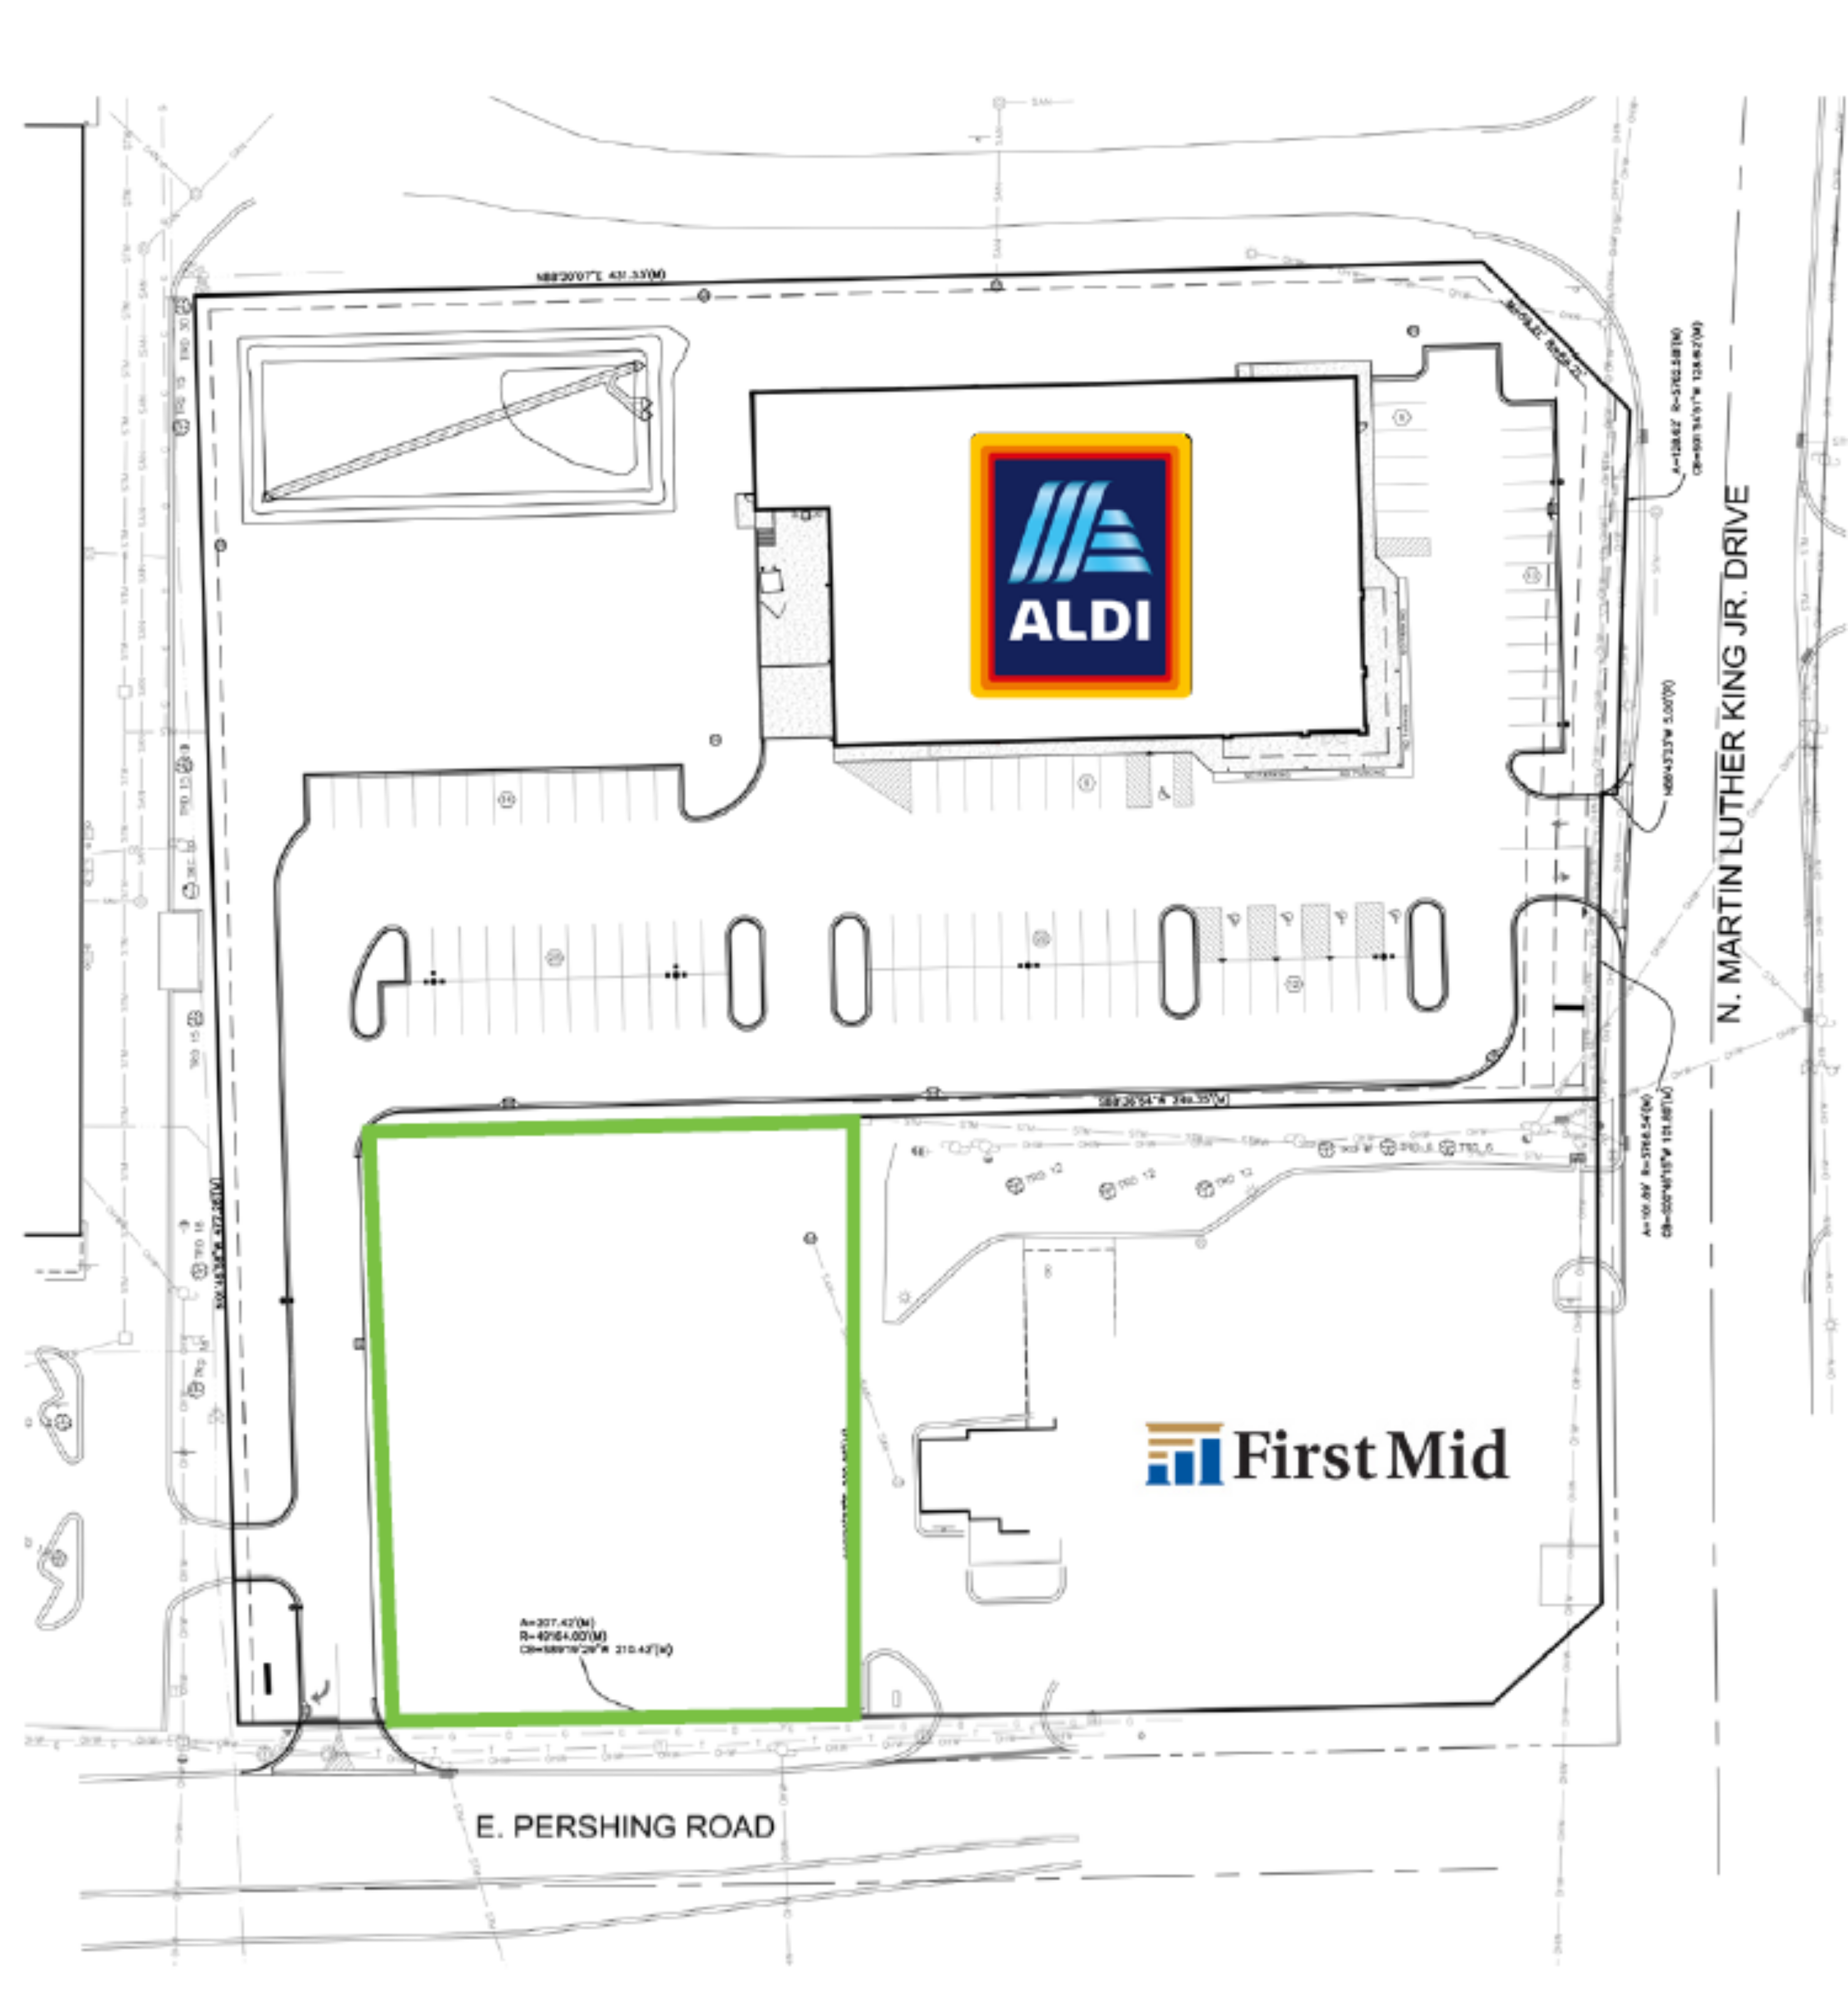 0.73 Acre Lot: site plan